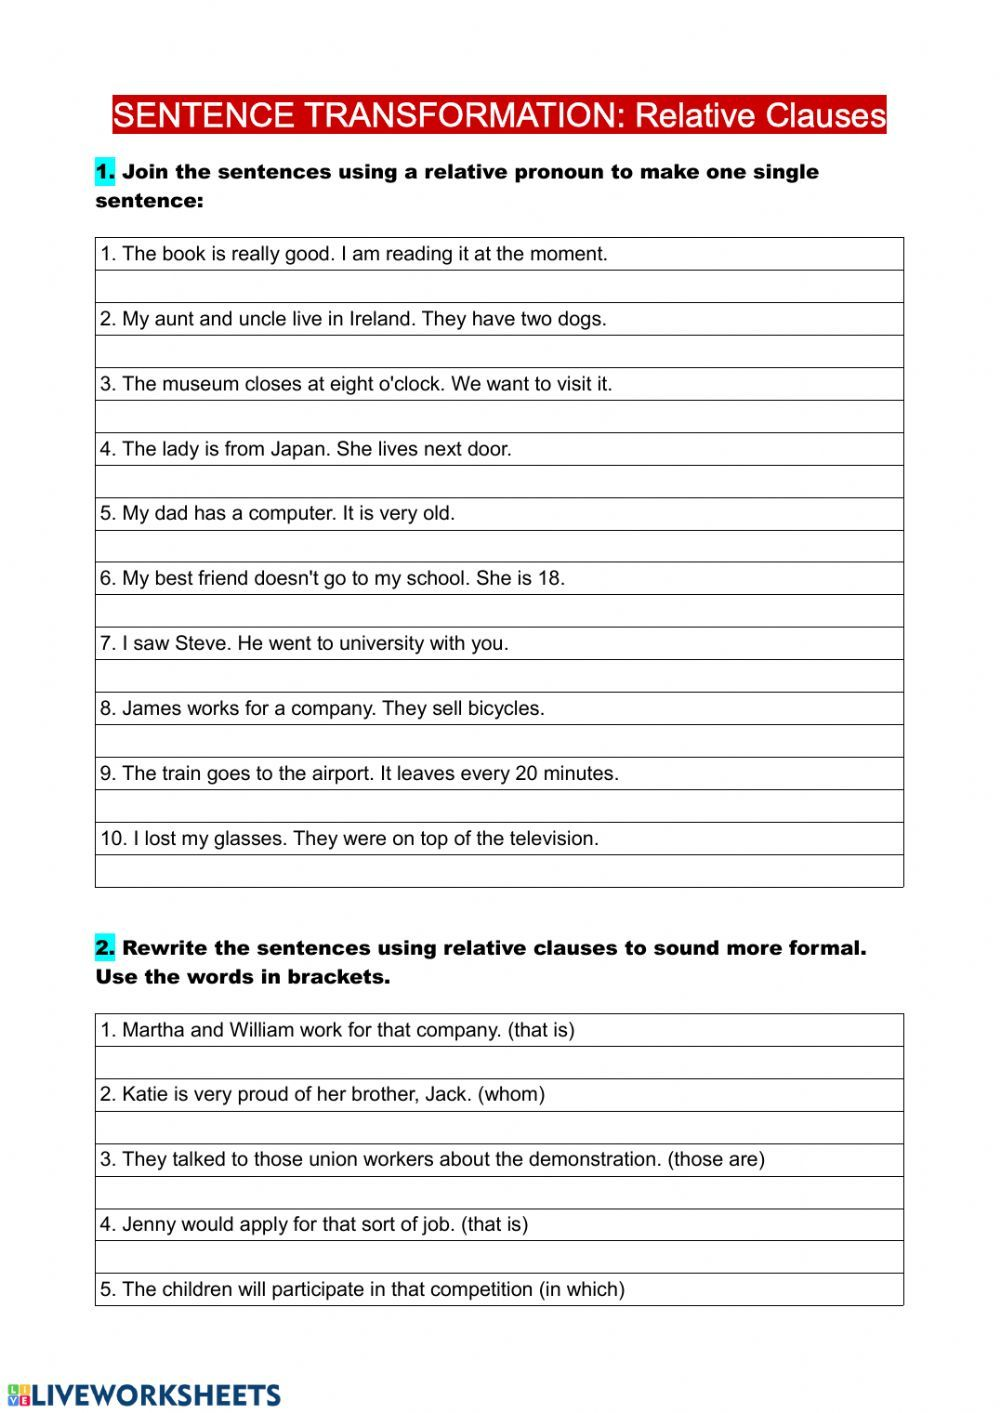 Relative clauses interactive and downloadable worksheet